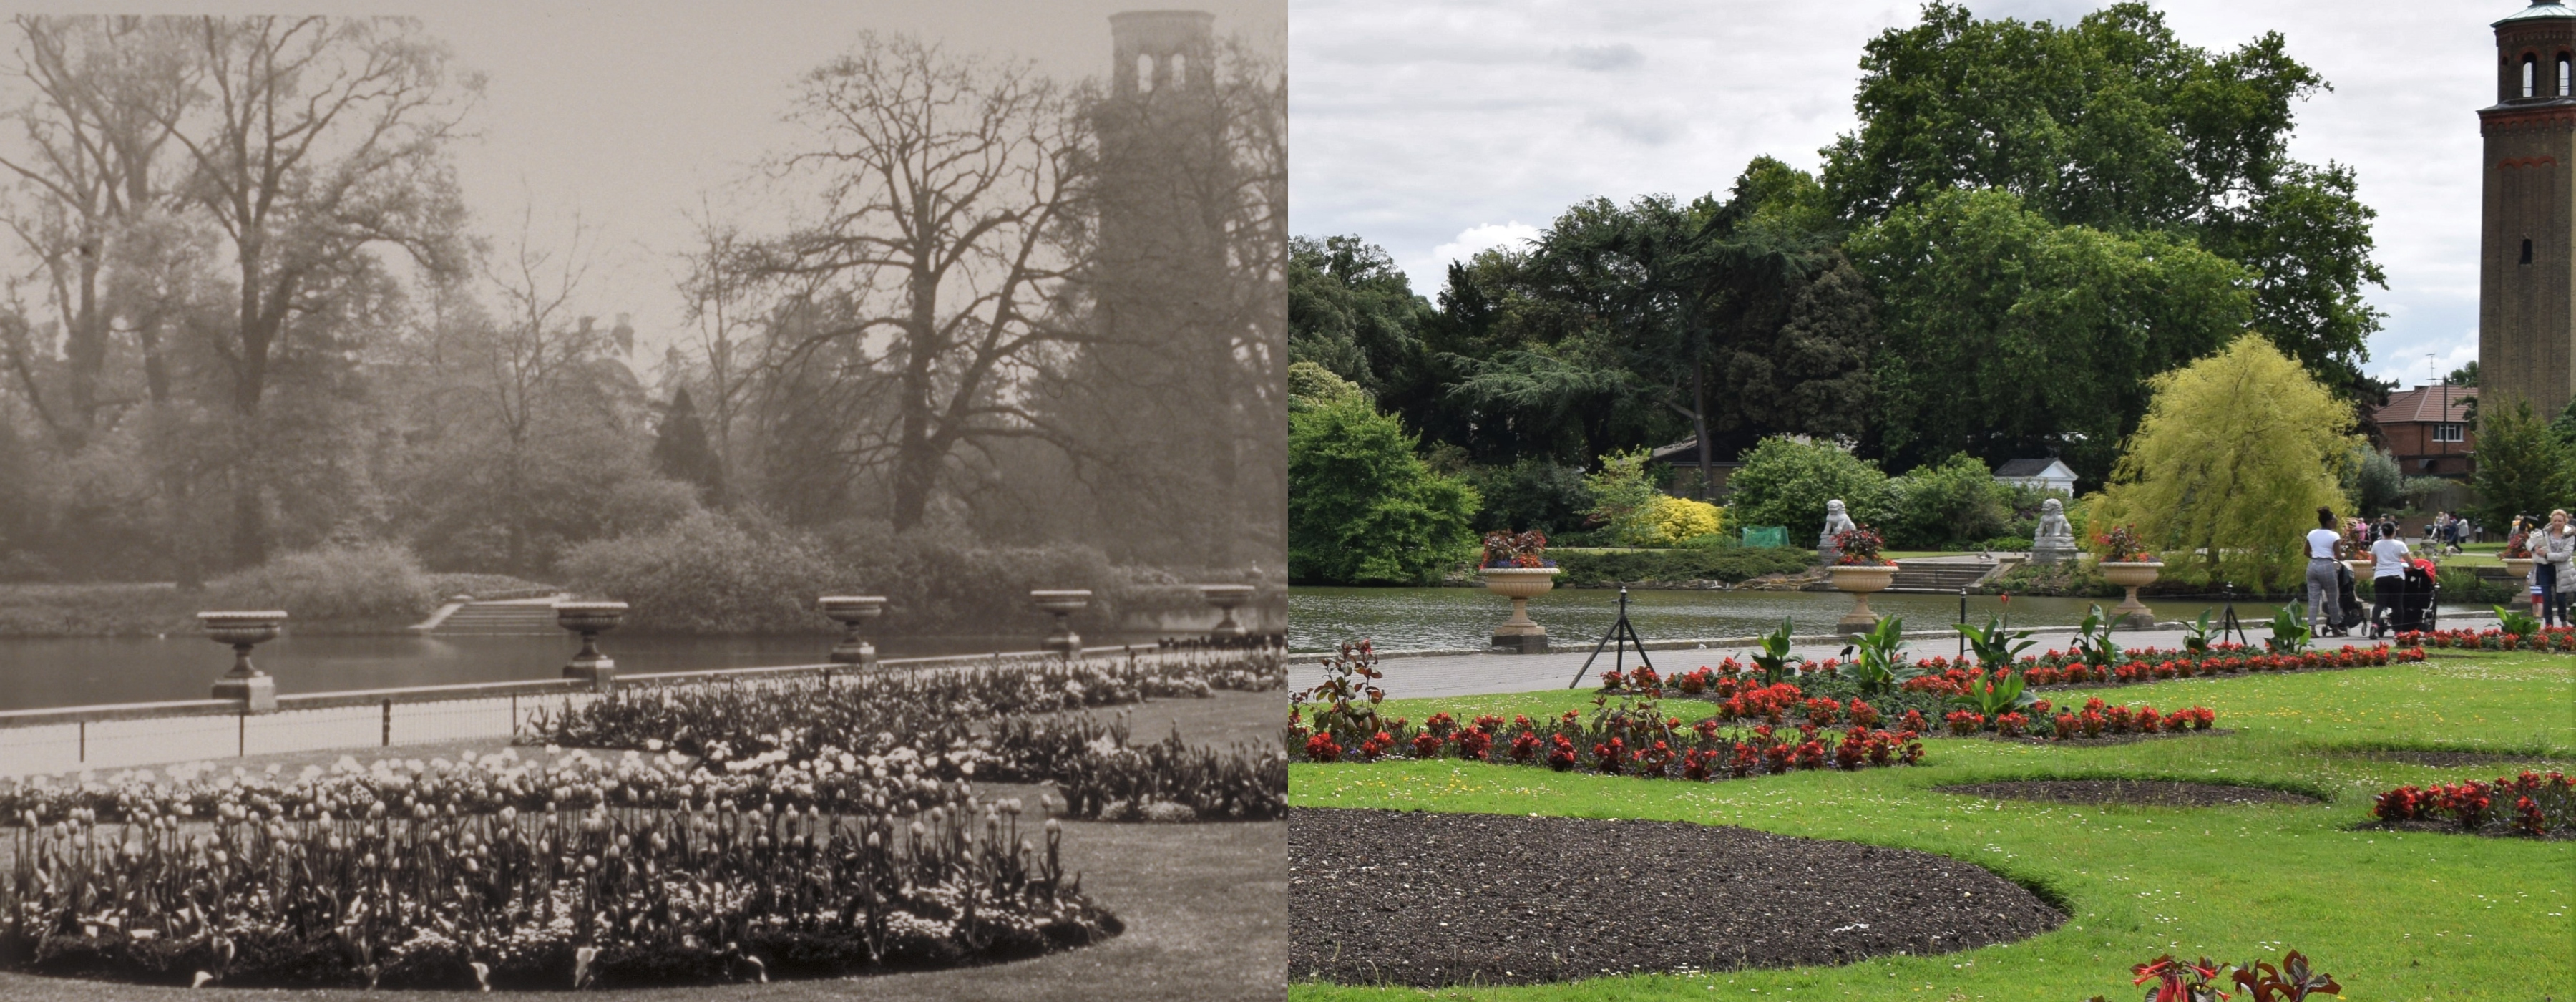 Palm House parterre then and now